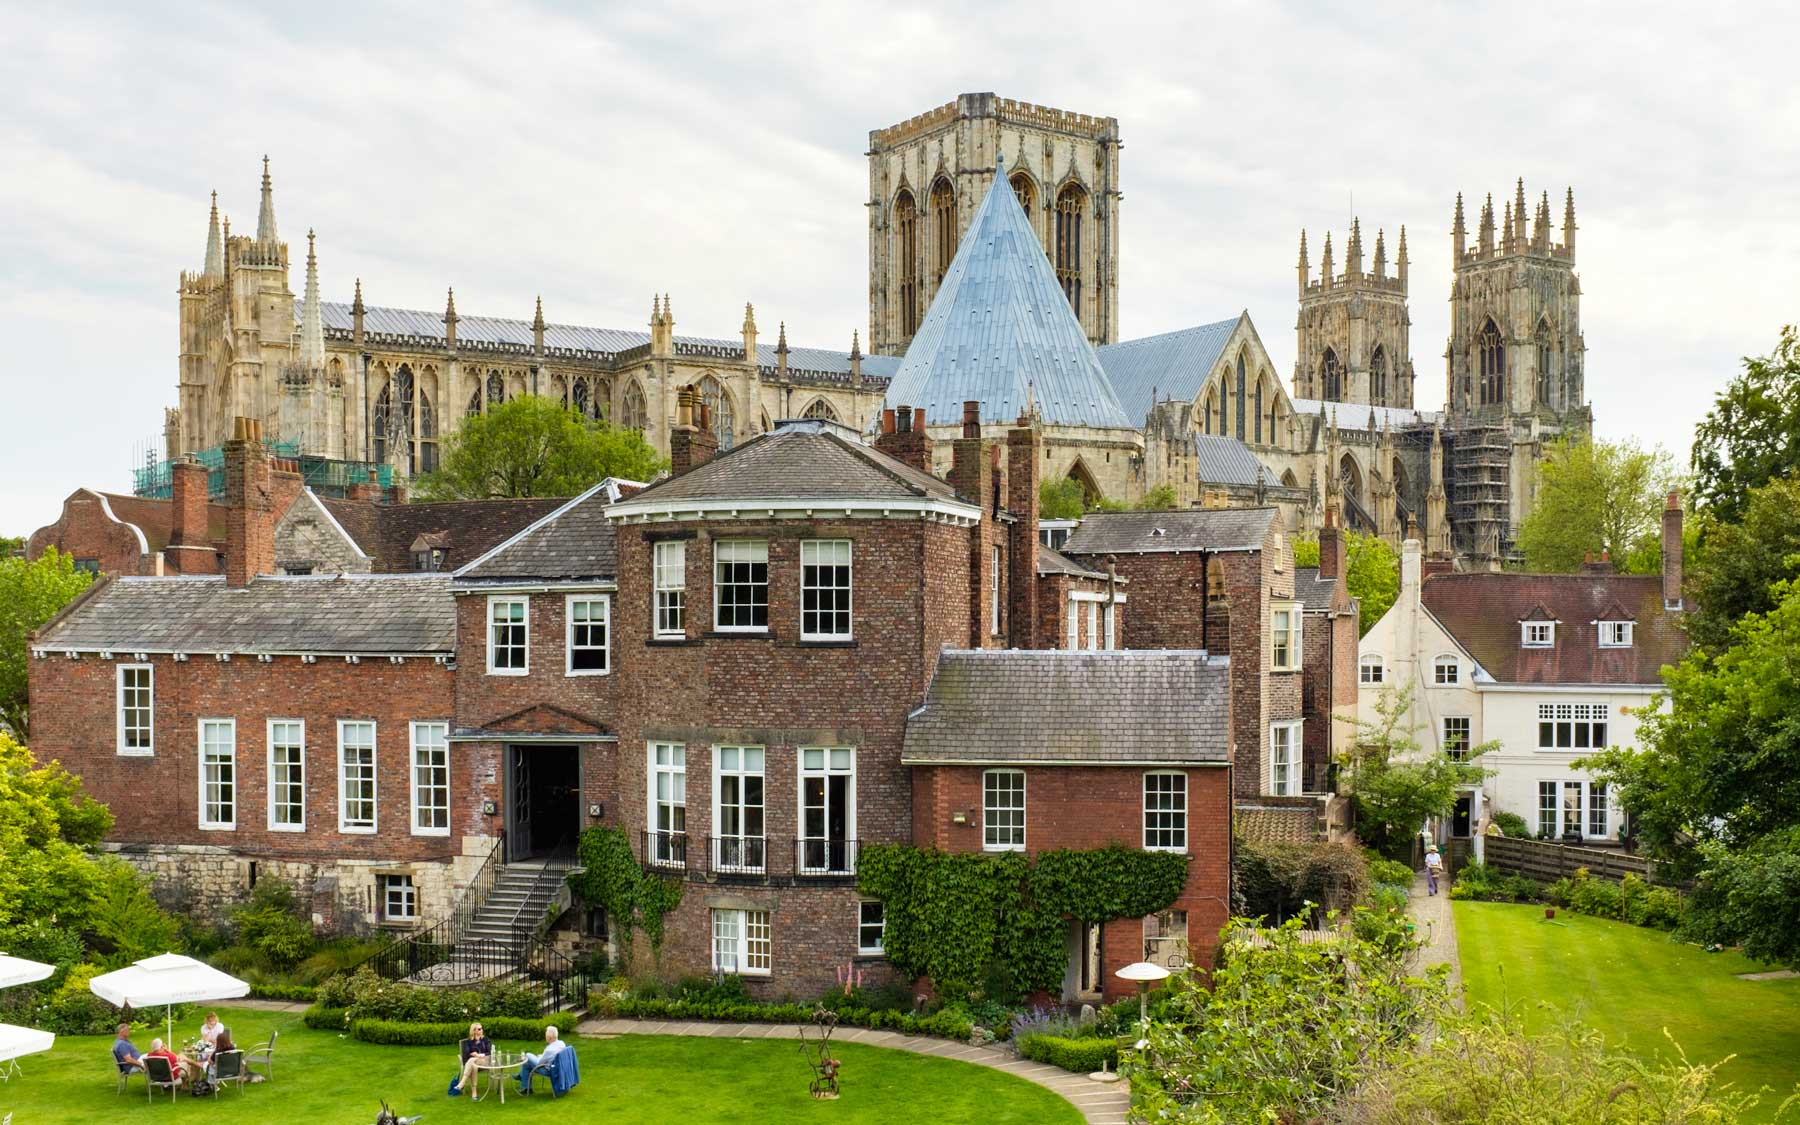 A view of York Minster from the city walls.